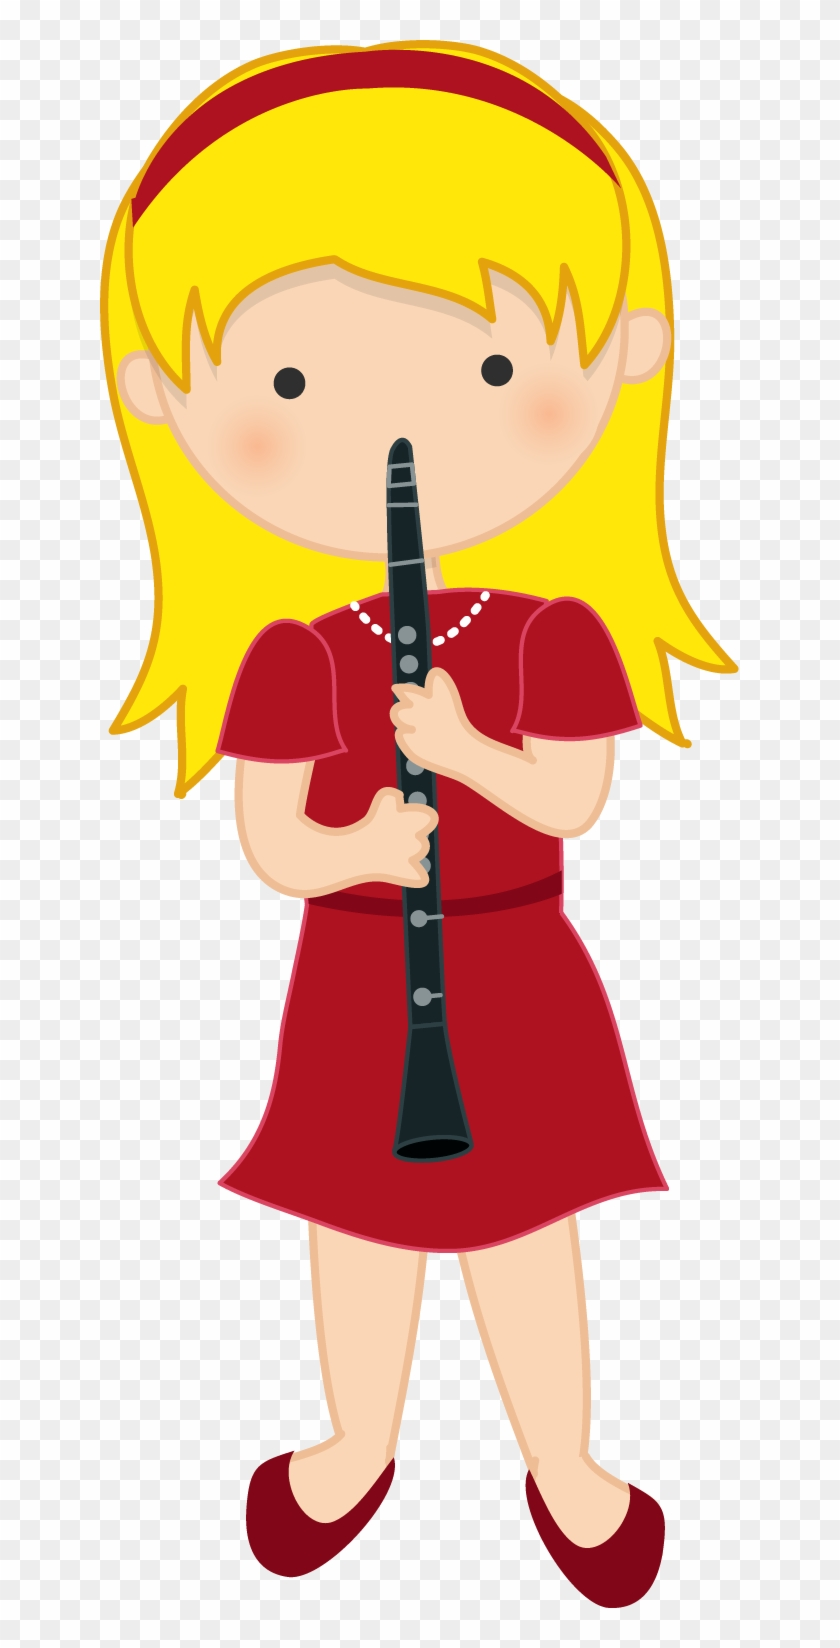 photo relating to Printable Pictures of Musical Instruments referred to as Songs Clipart, Musical Applications, Printable, Songs